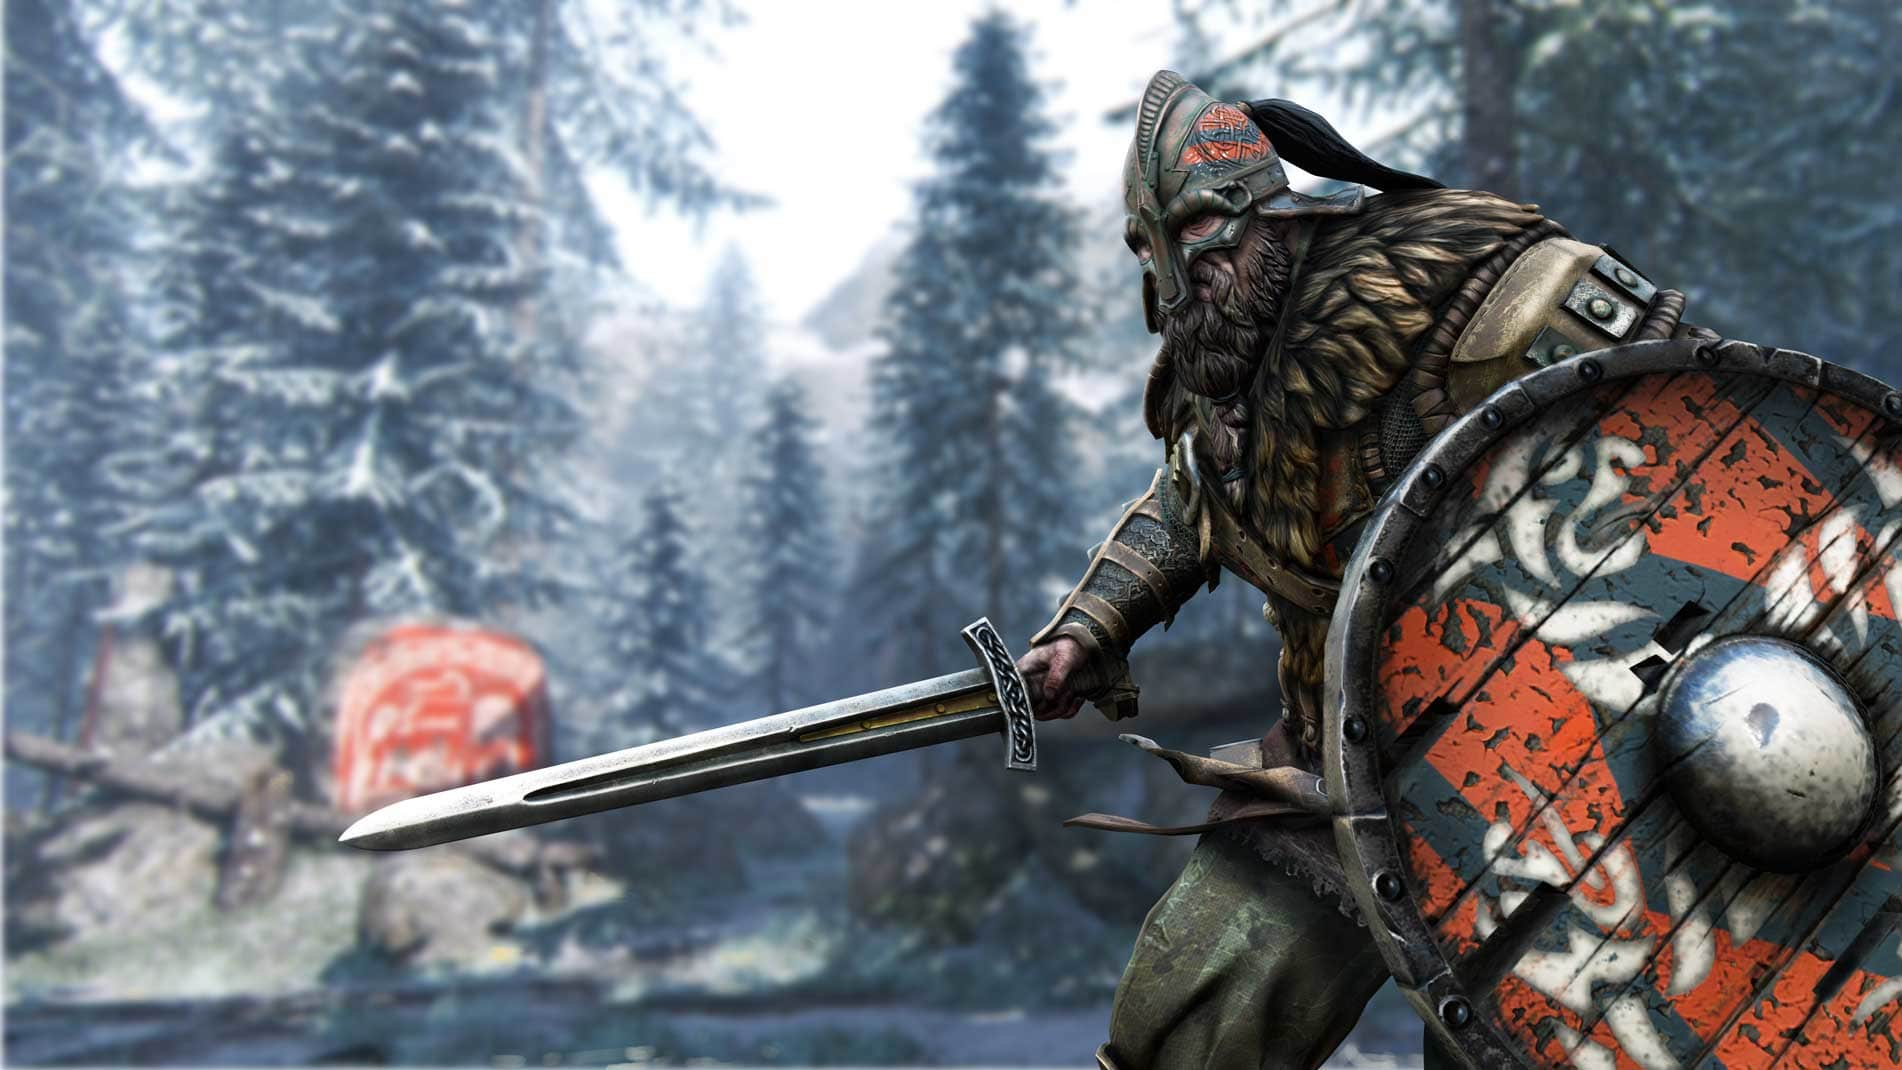 Thanks to his large shield, the Warlord is able to use it to block damage that would otherwise chip away at his health.